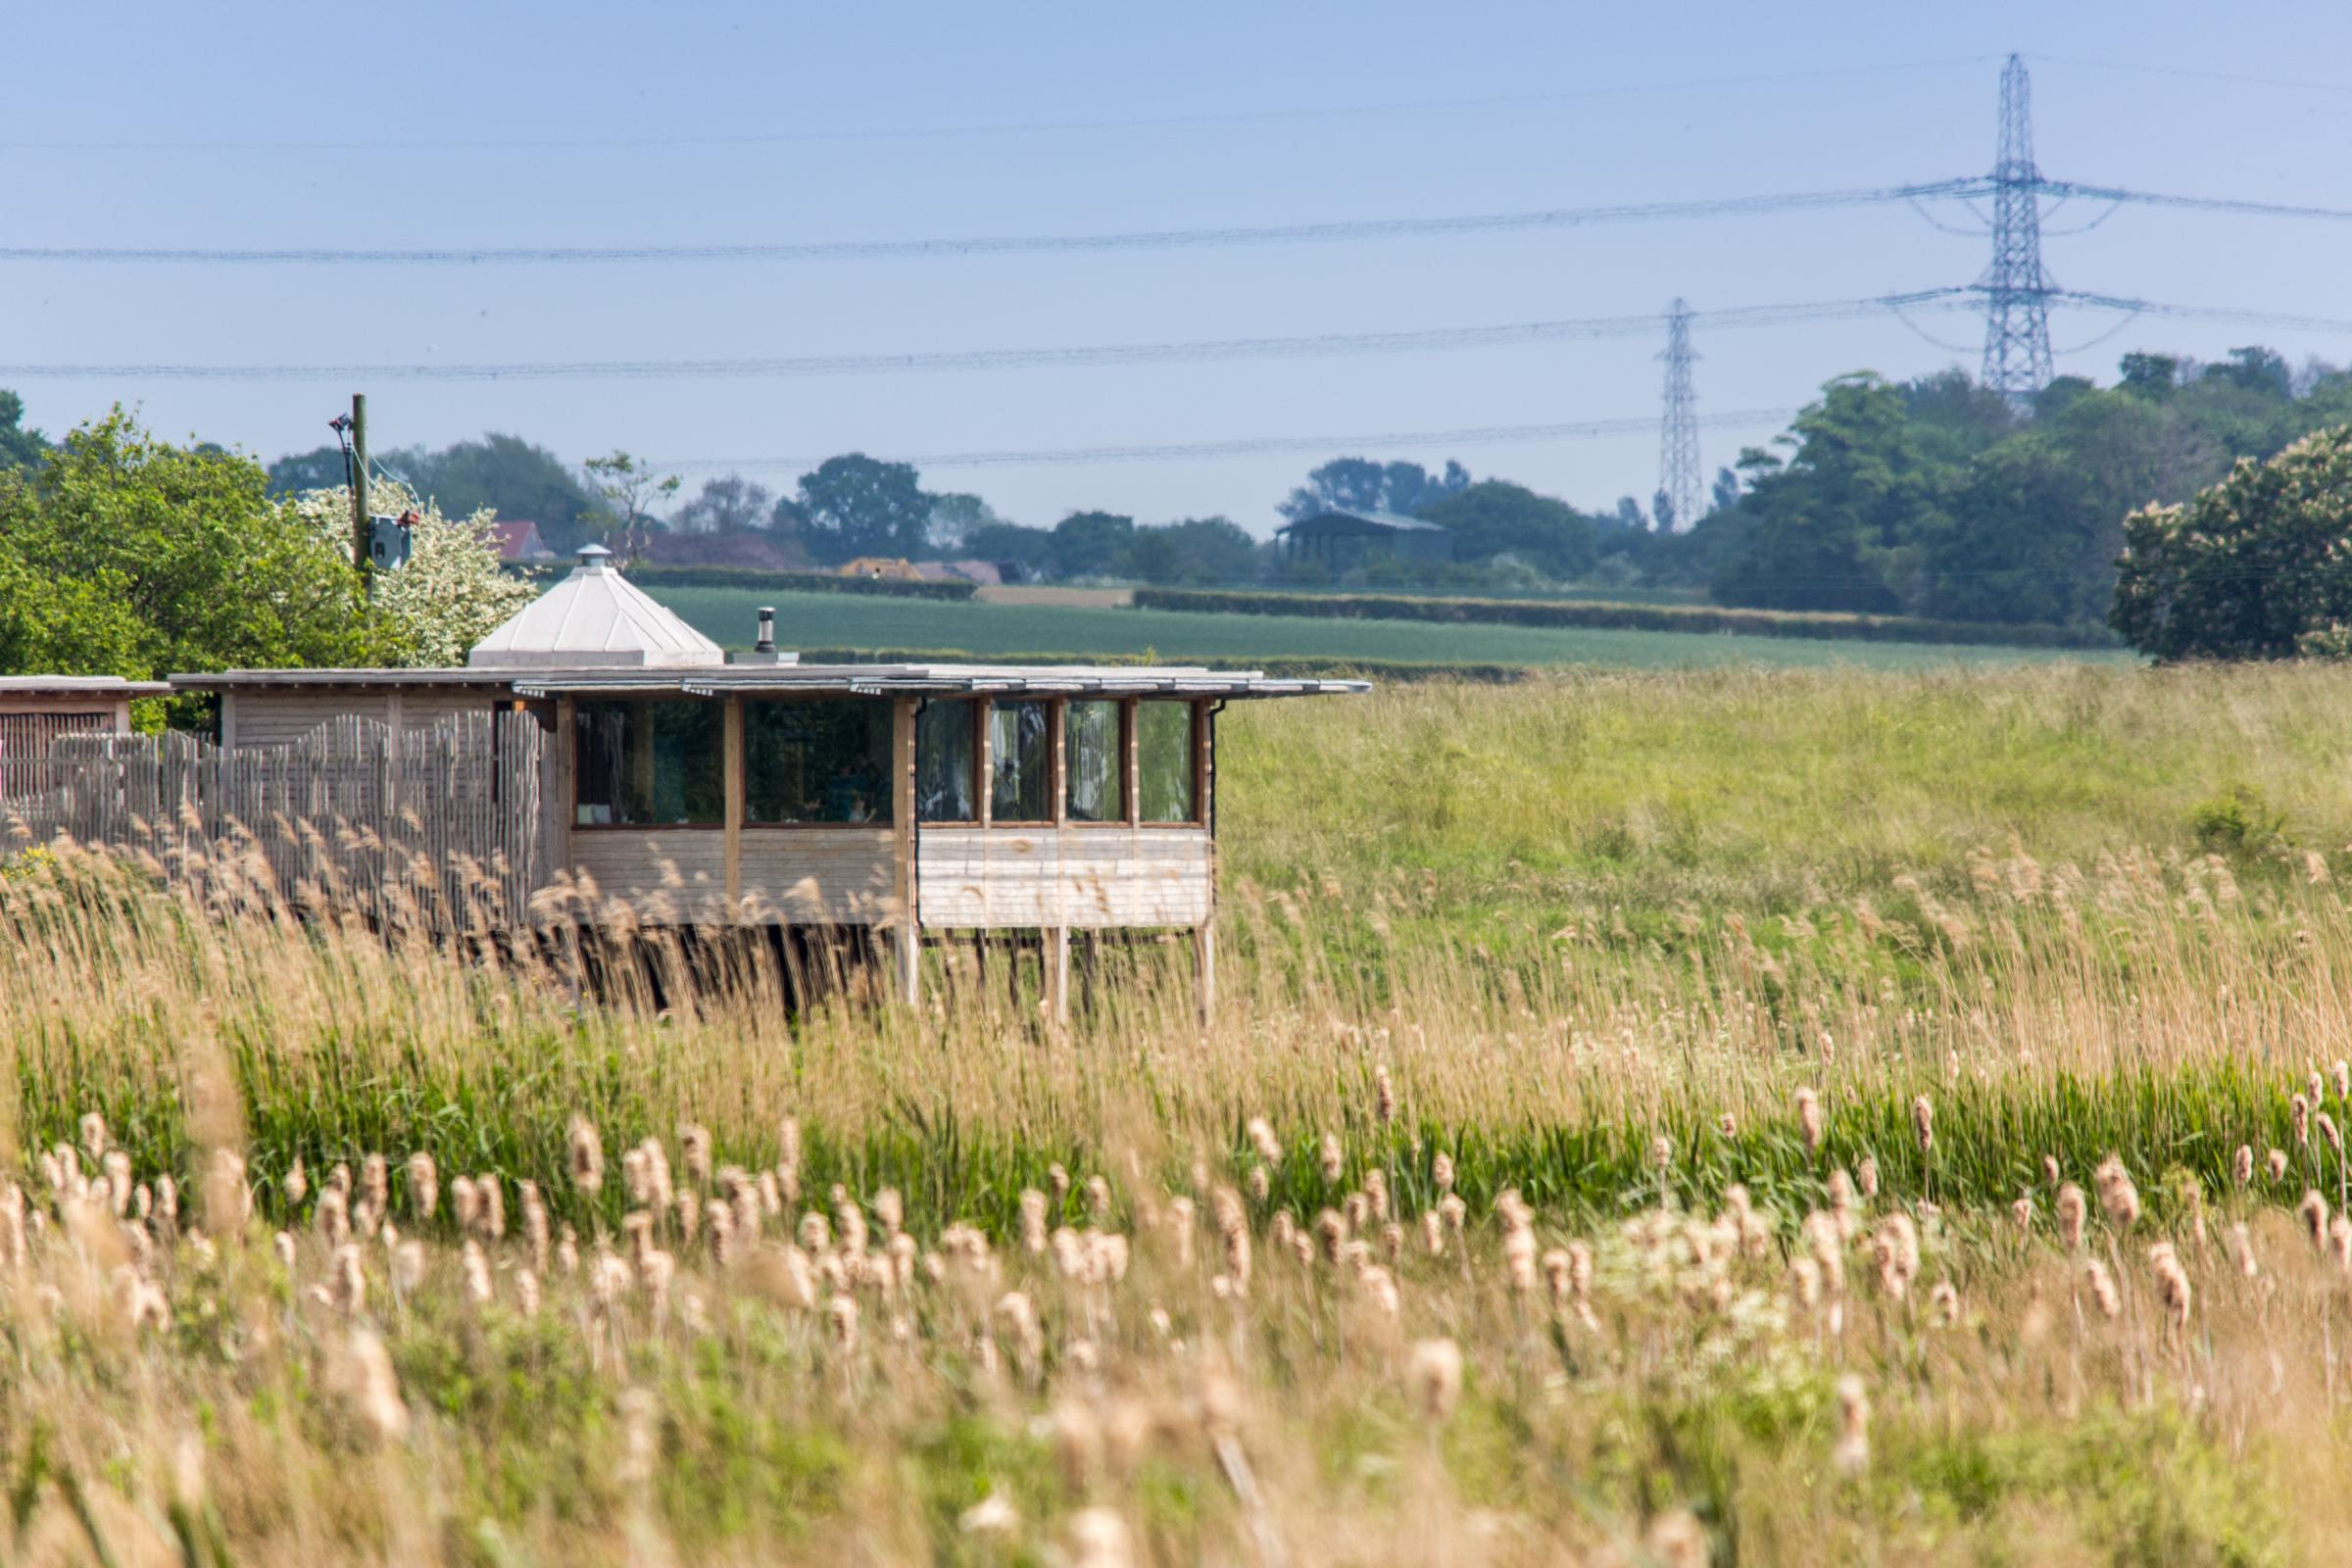 RSPB Burton Mere Wetlands is one of the hundreds of participating National Lottery-funded visitor attractions across the UK. (Picture: Ron Thomas)